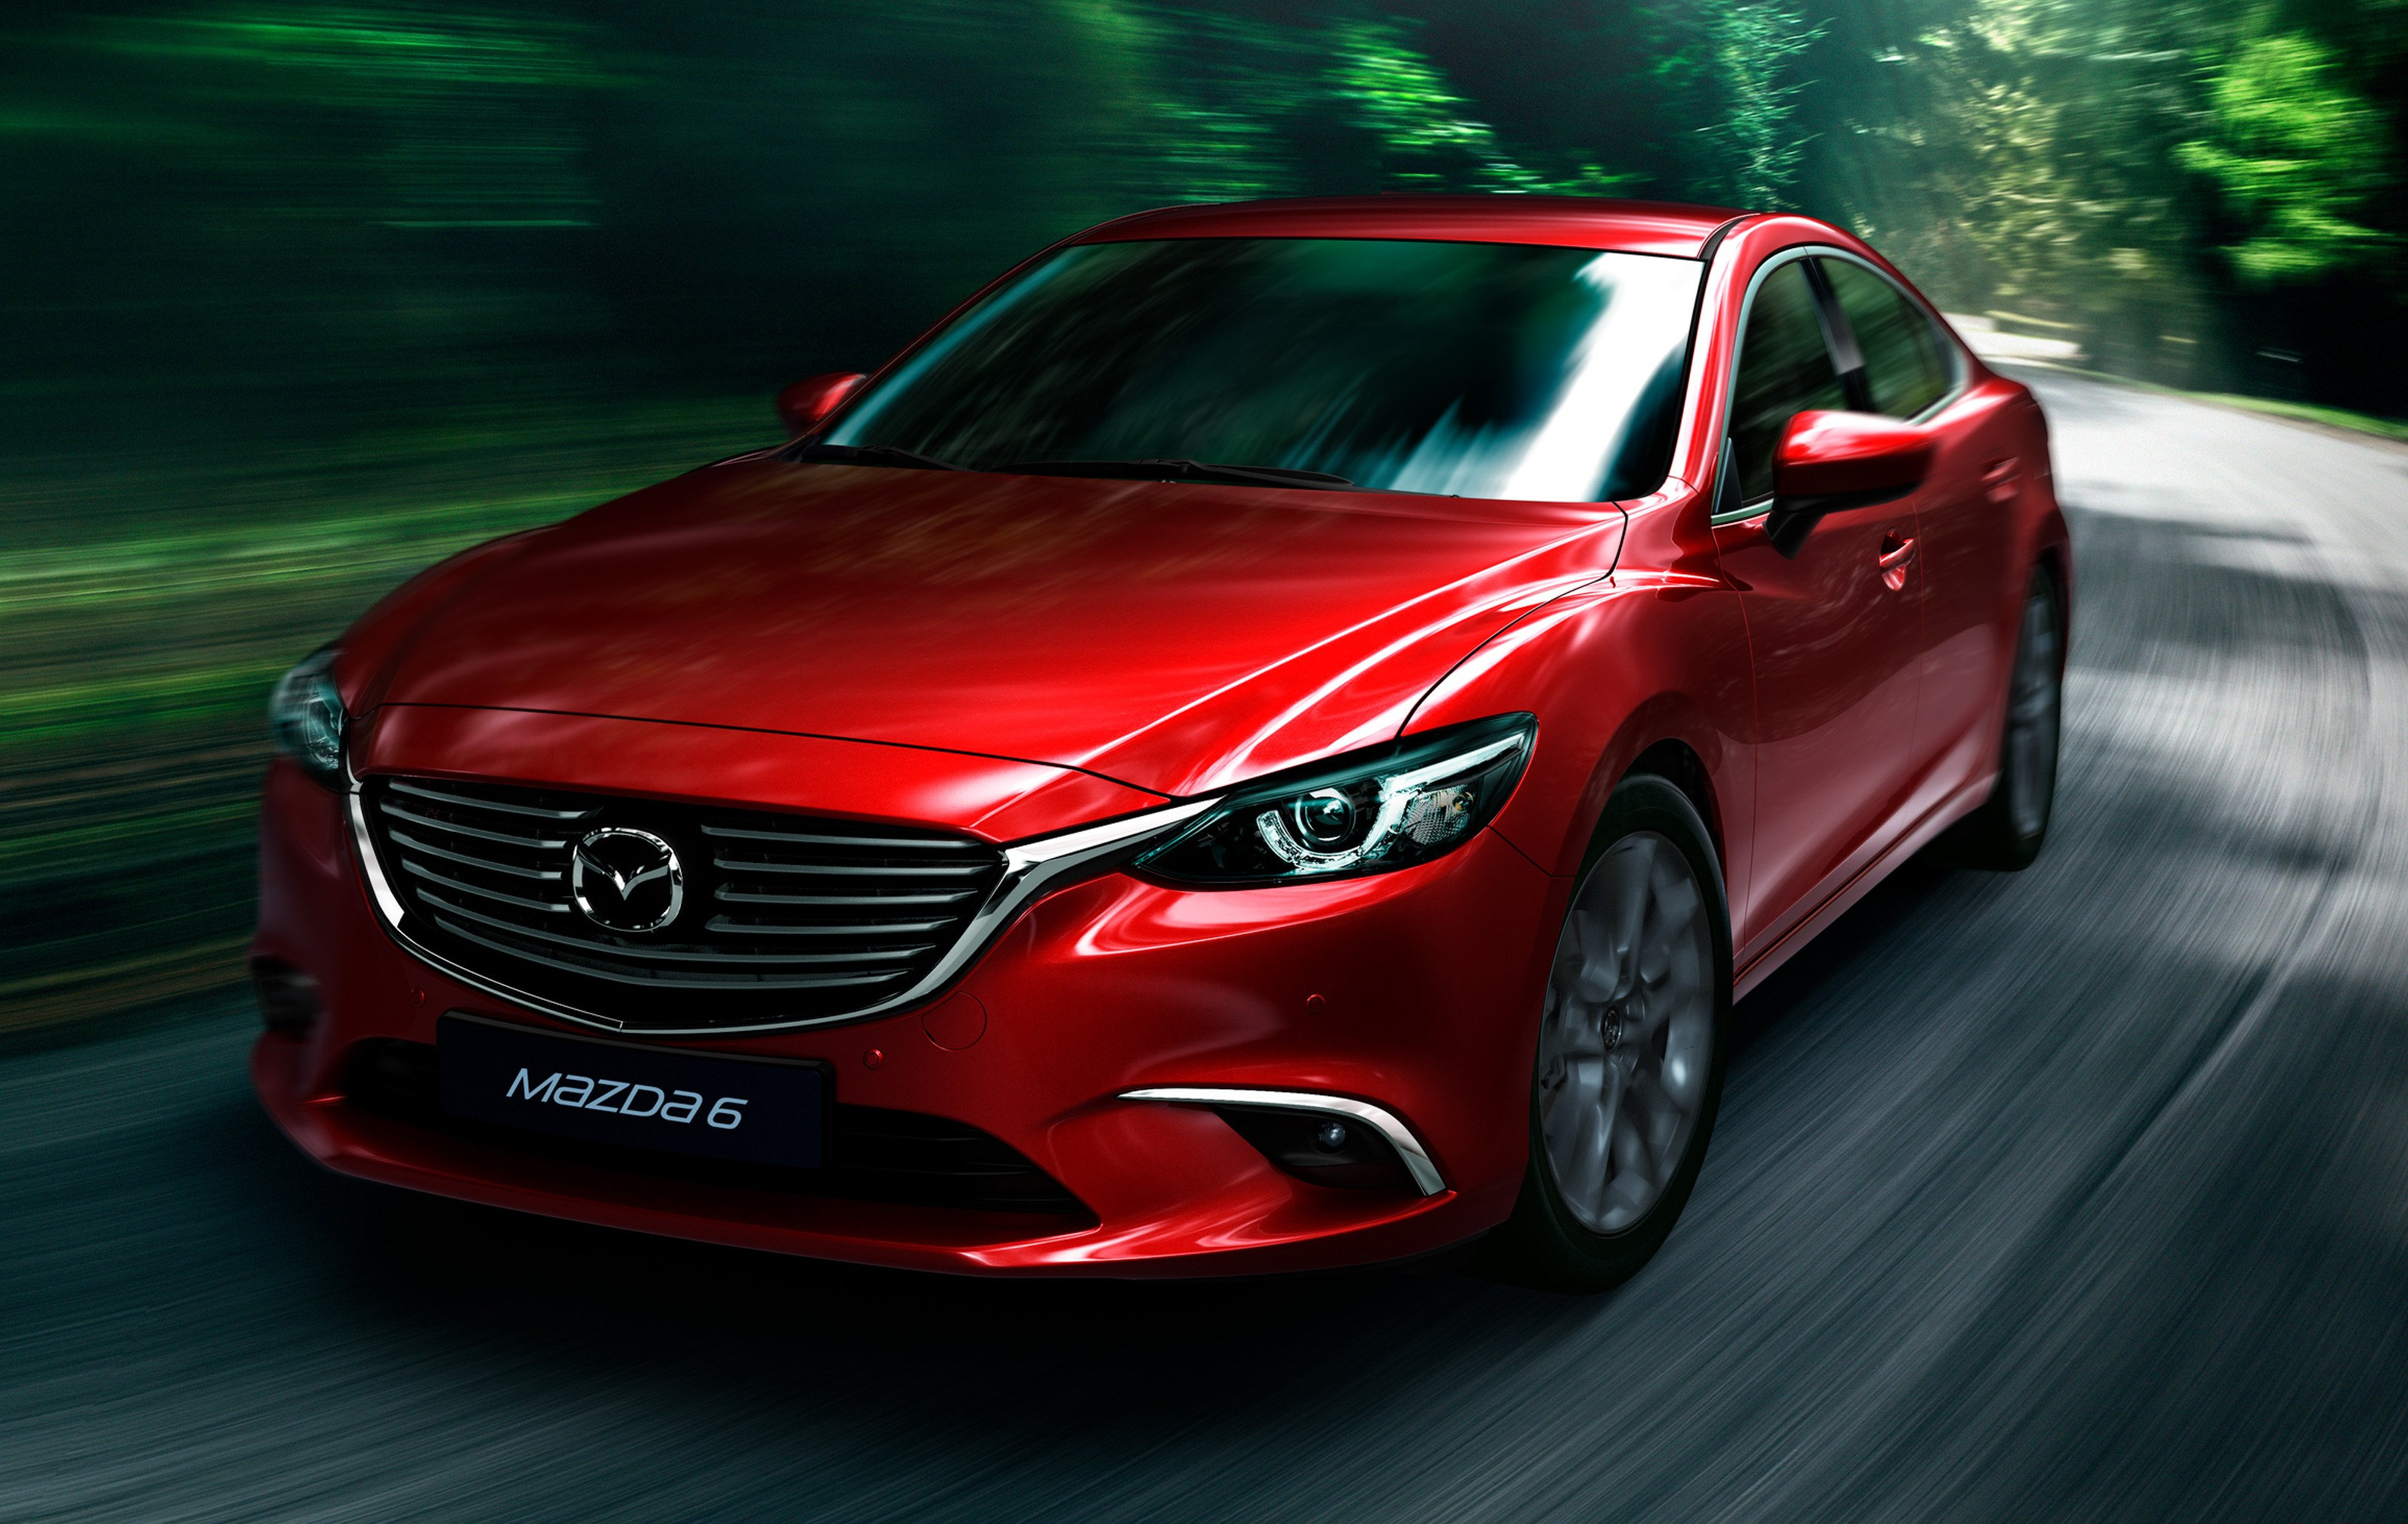 Mazda 6 facelift unveiled at the 2014 LA motor show Image ...